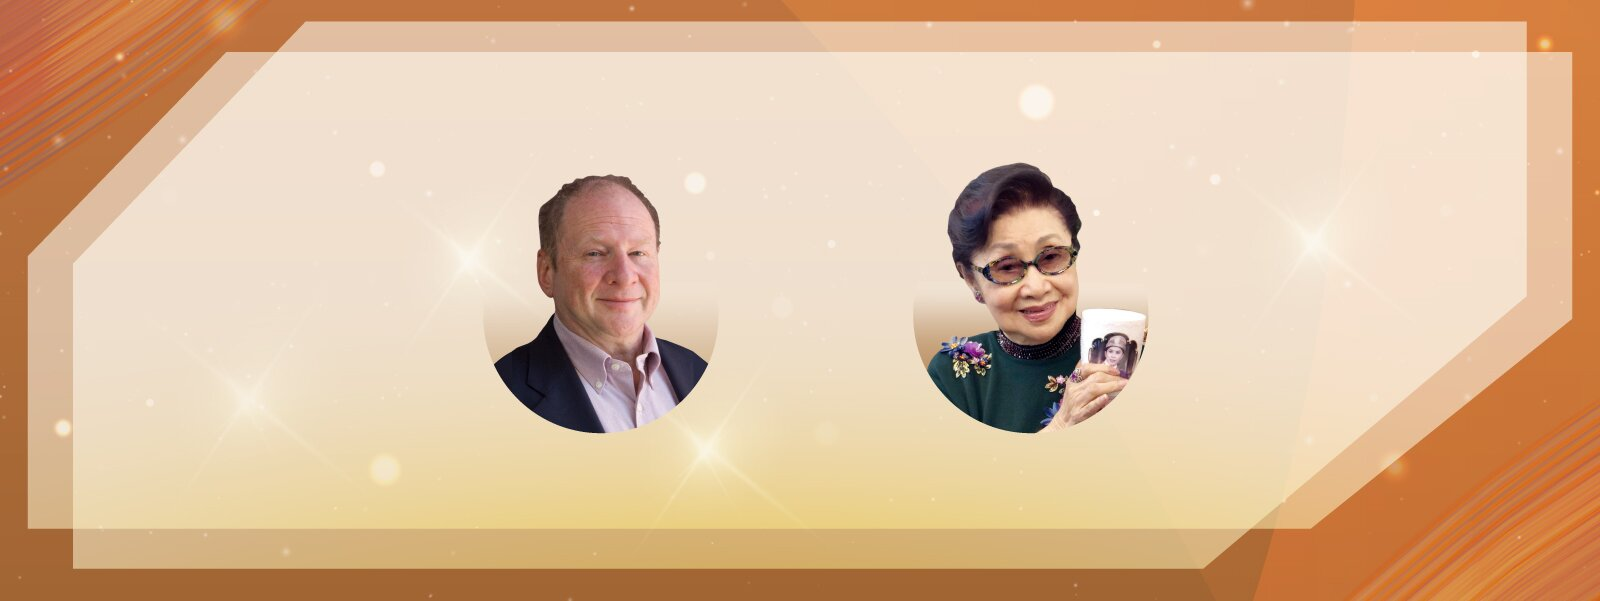 EdUHK to Confer Honorary Doctorates on Distinguished Individuals